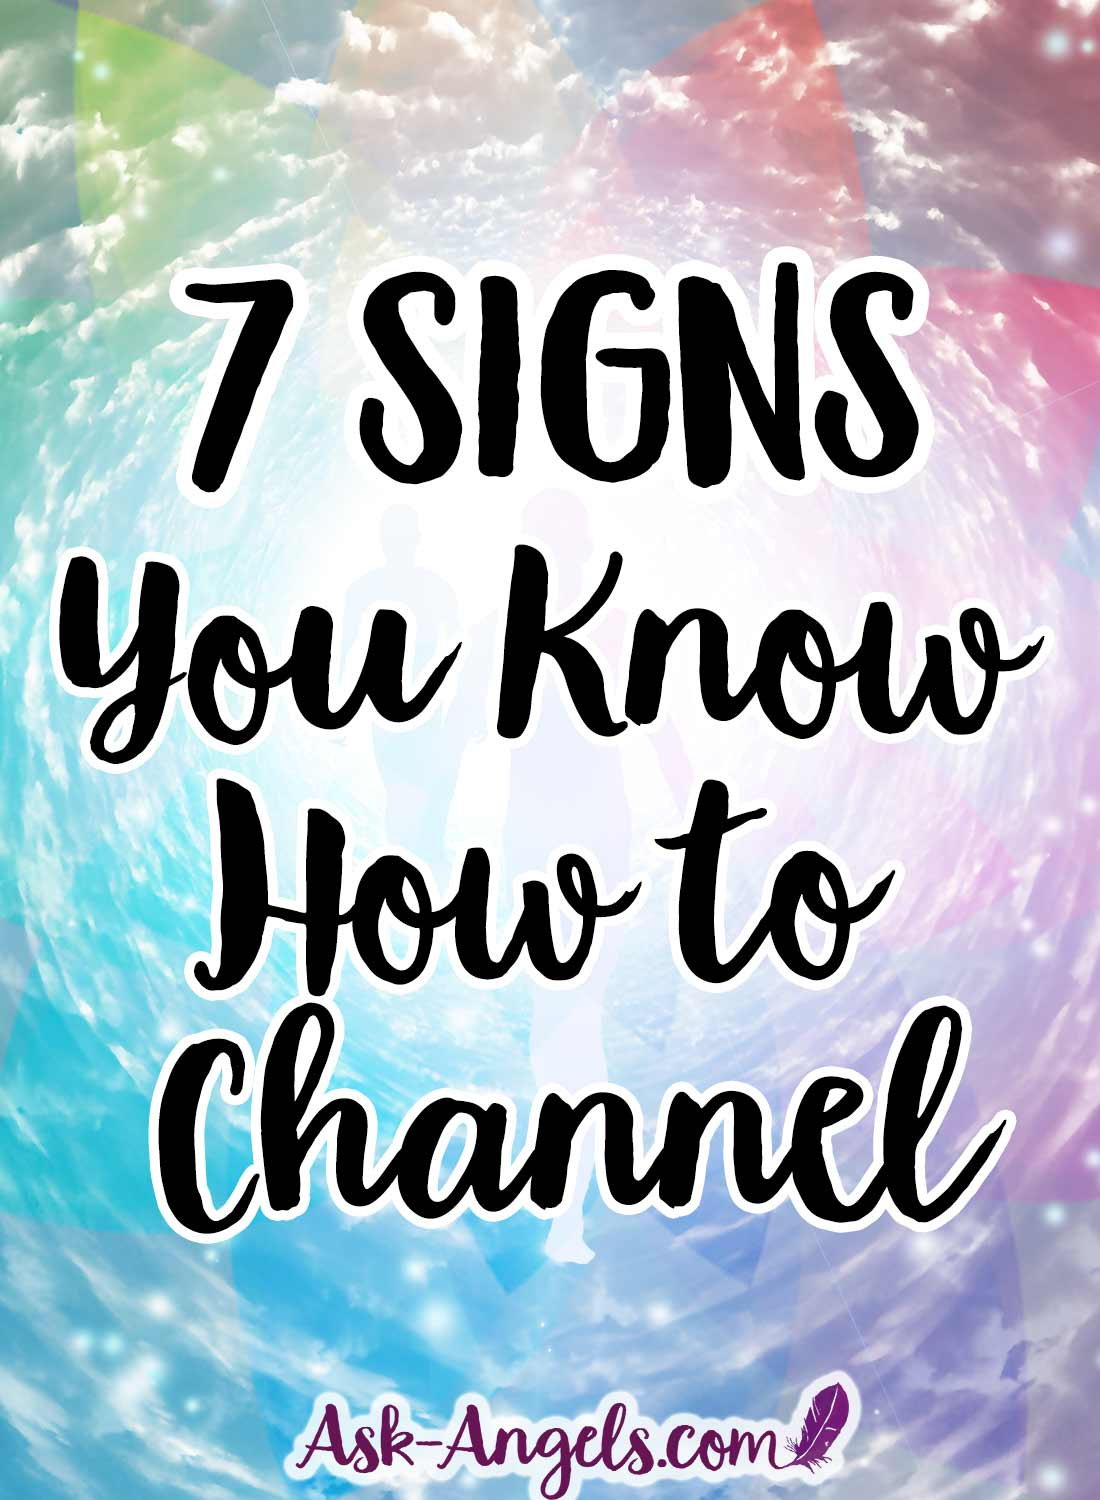 7 Signs You Know How to Channel - Spiritual Channeling